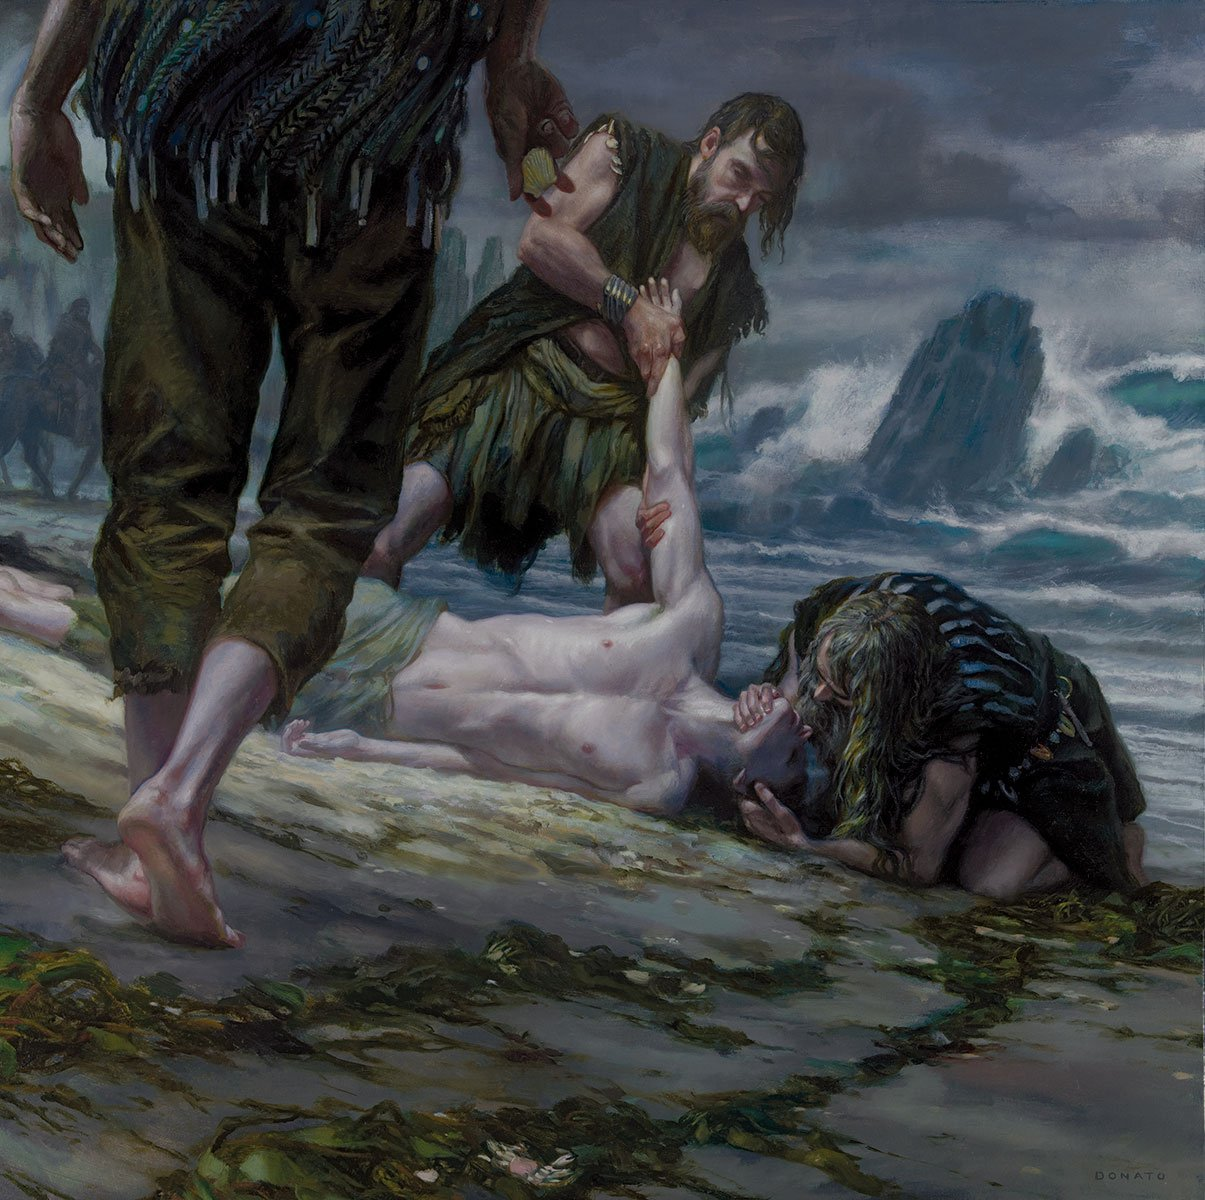 "What is Dead Cannot Die     30"" x 30""  Oil on Panel 2014   Calendar image for A Song of Ice and Fire by George R.R. Martin"